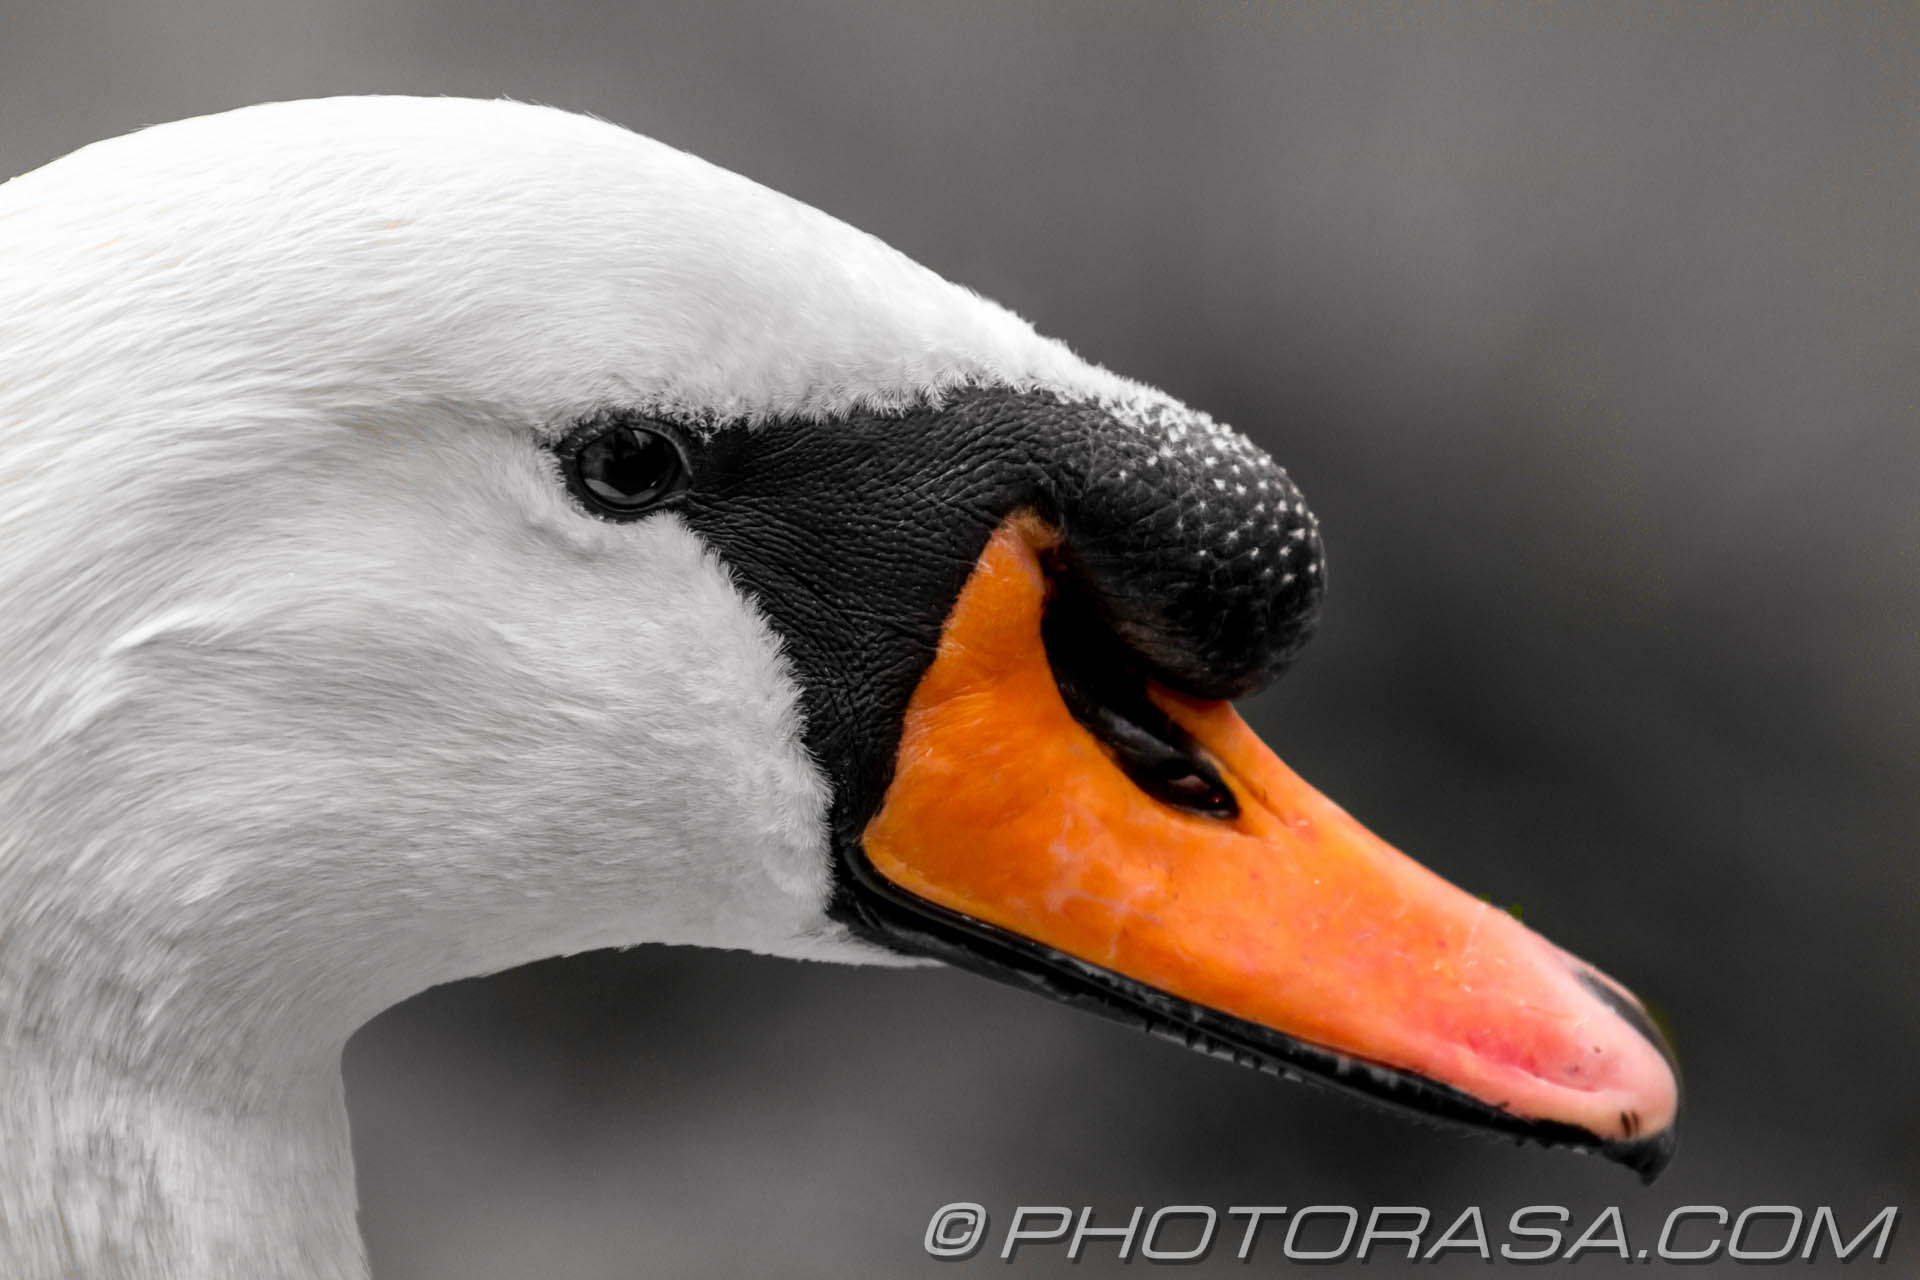 http://photorasa.com/animals/birds/art-swans/attachment/mute-swan-cob-from-the-side-with-lump/